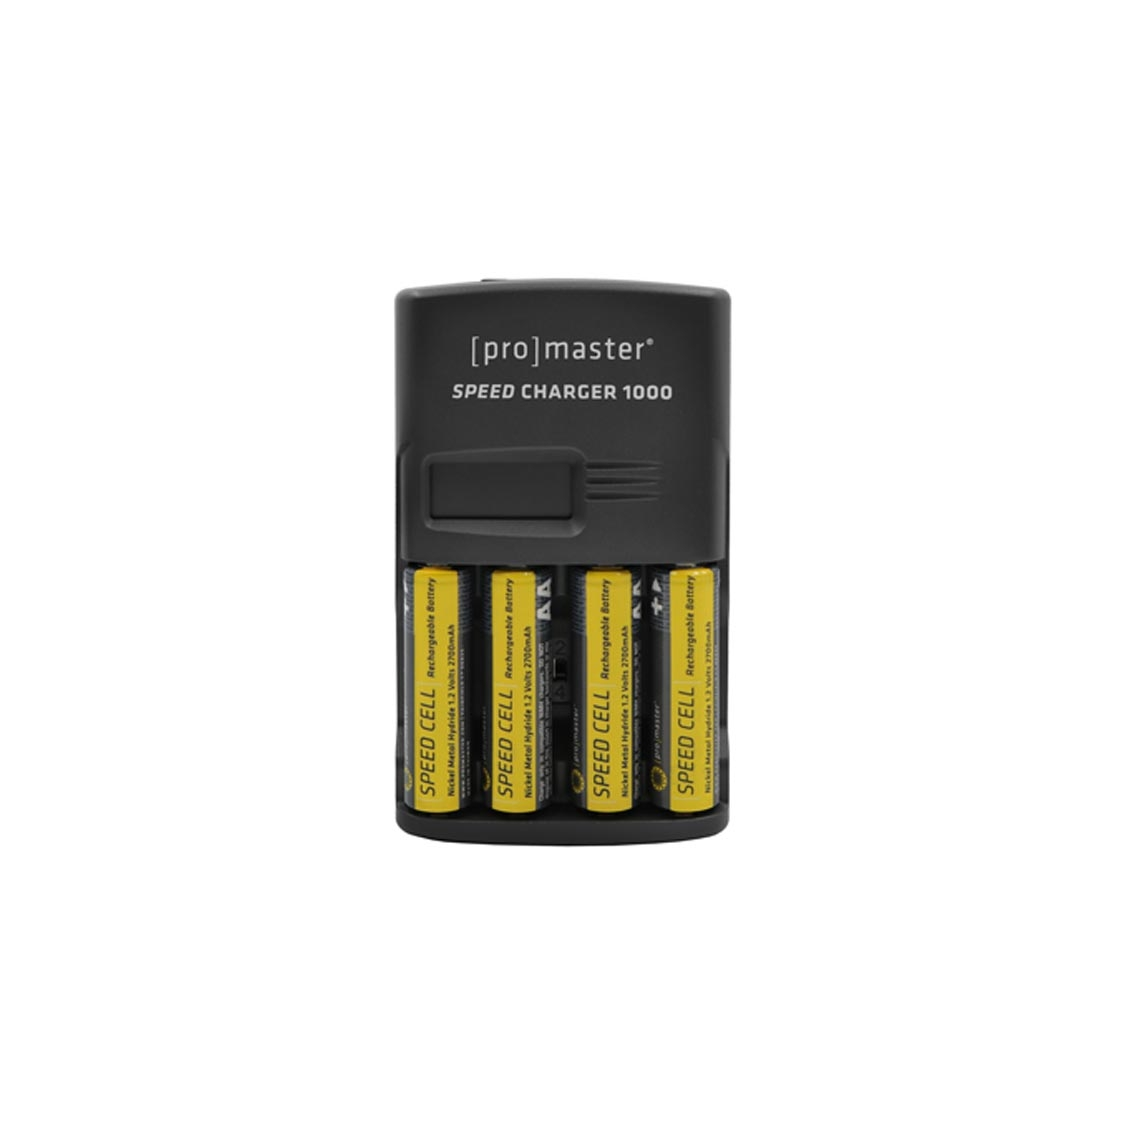 Promaster Speed Charger 1000 with 4x AA 2700mah Batteries